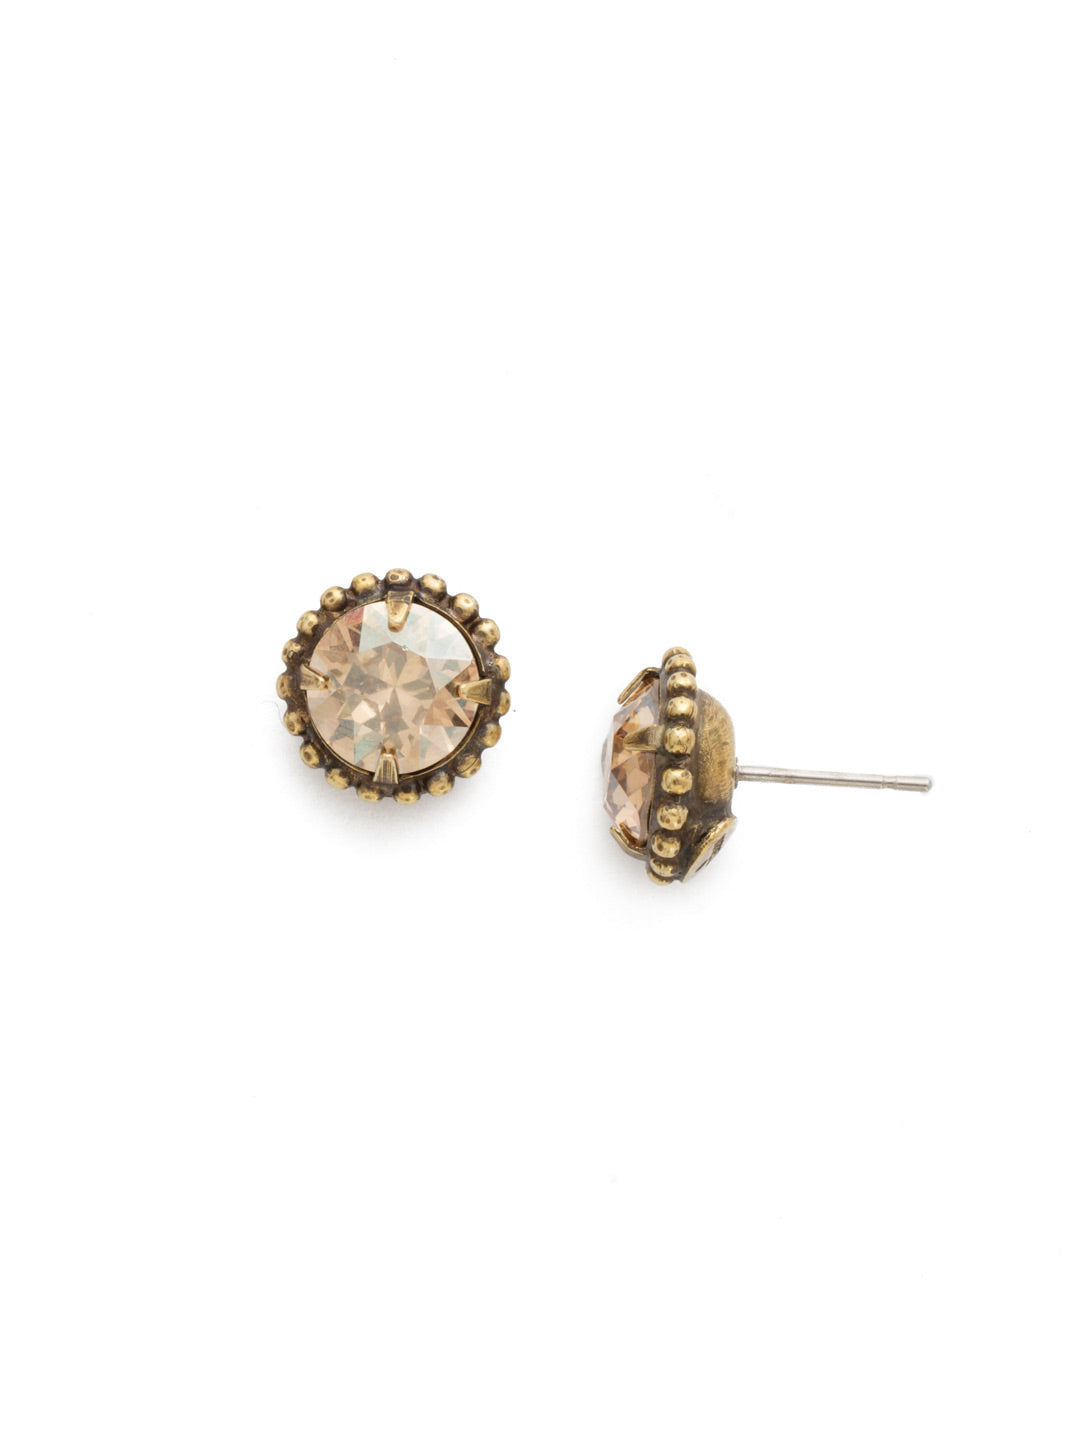 Simplicity Stud Earrings - EBY38AGDCH